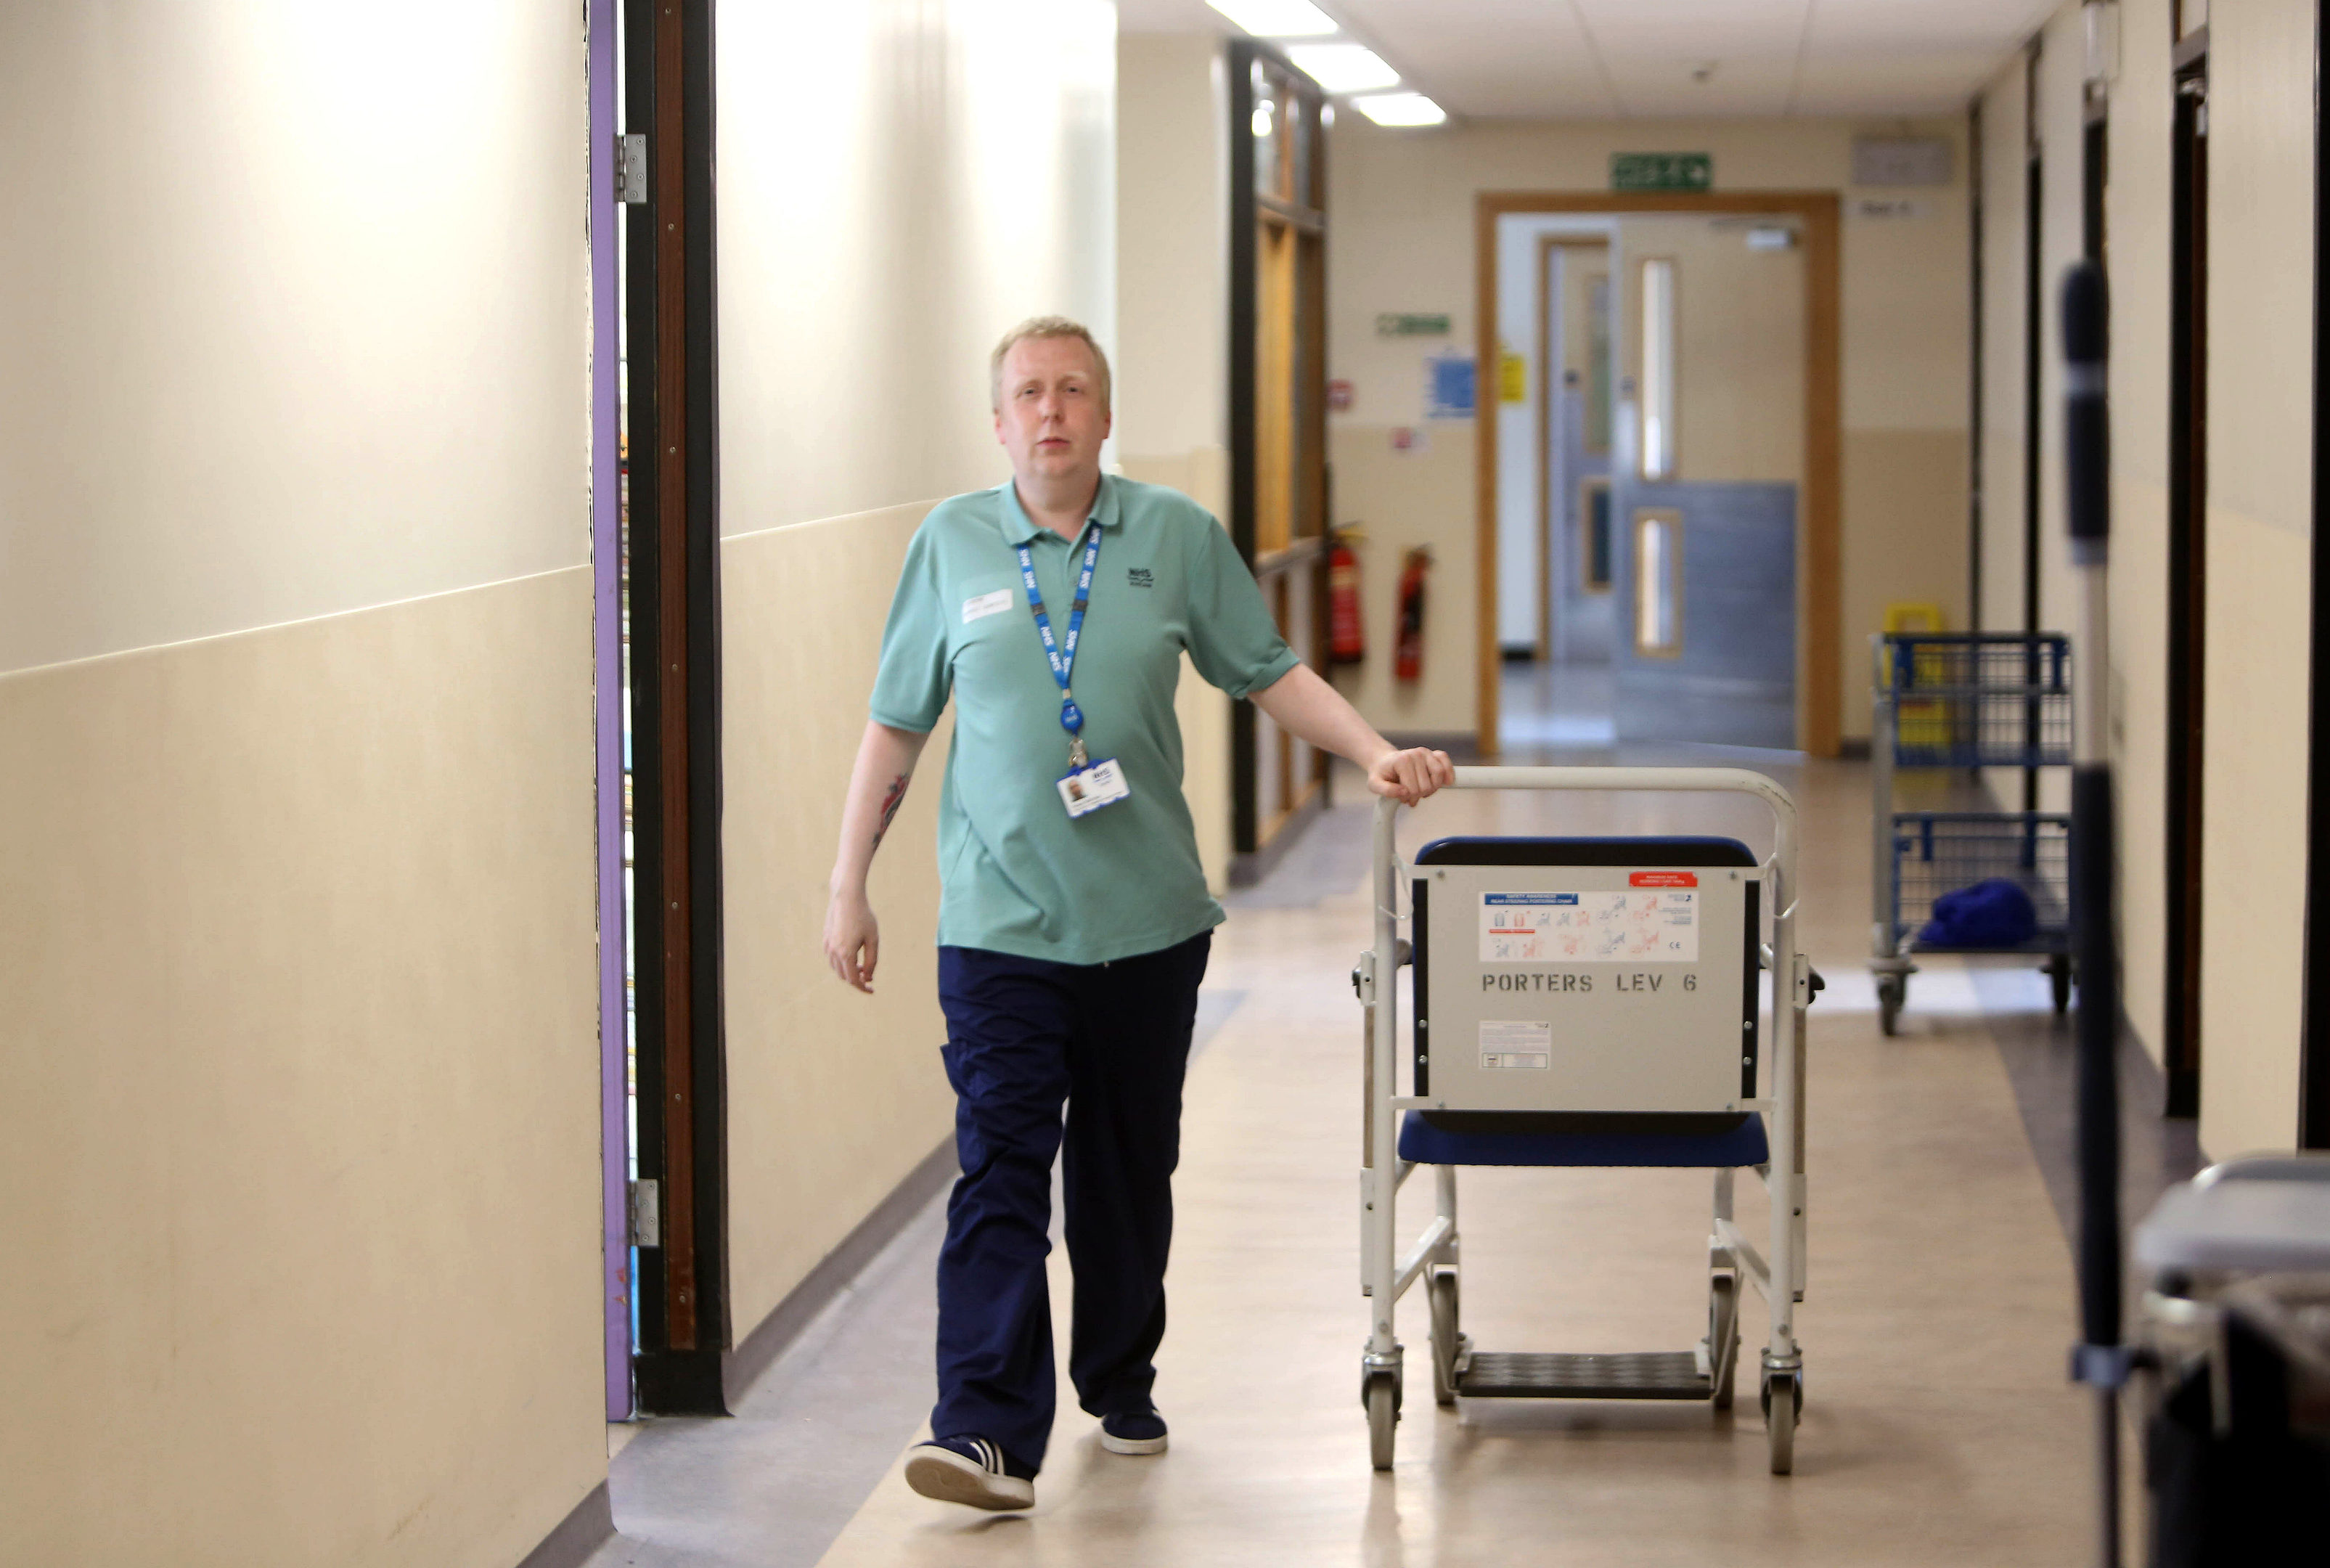 Porter Alistair McRobb who has worked at Ninewells for four years